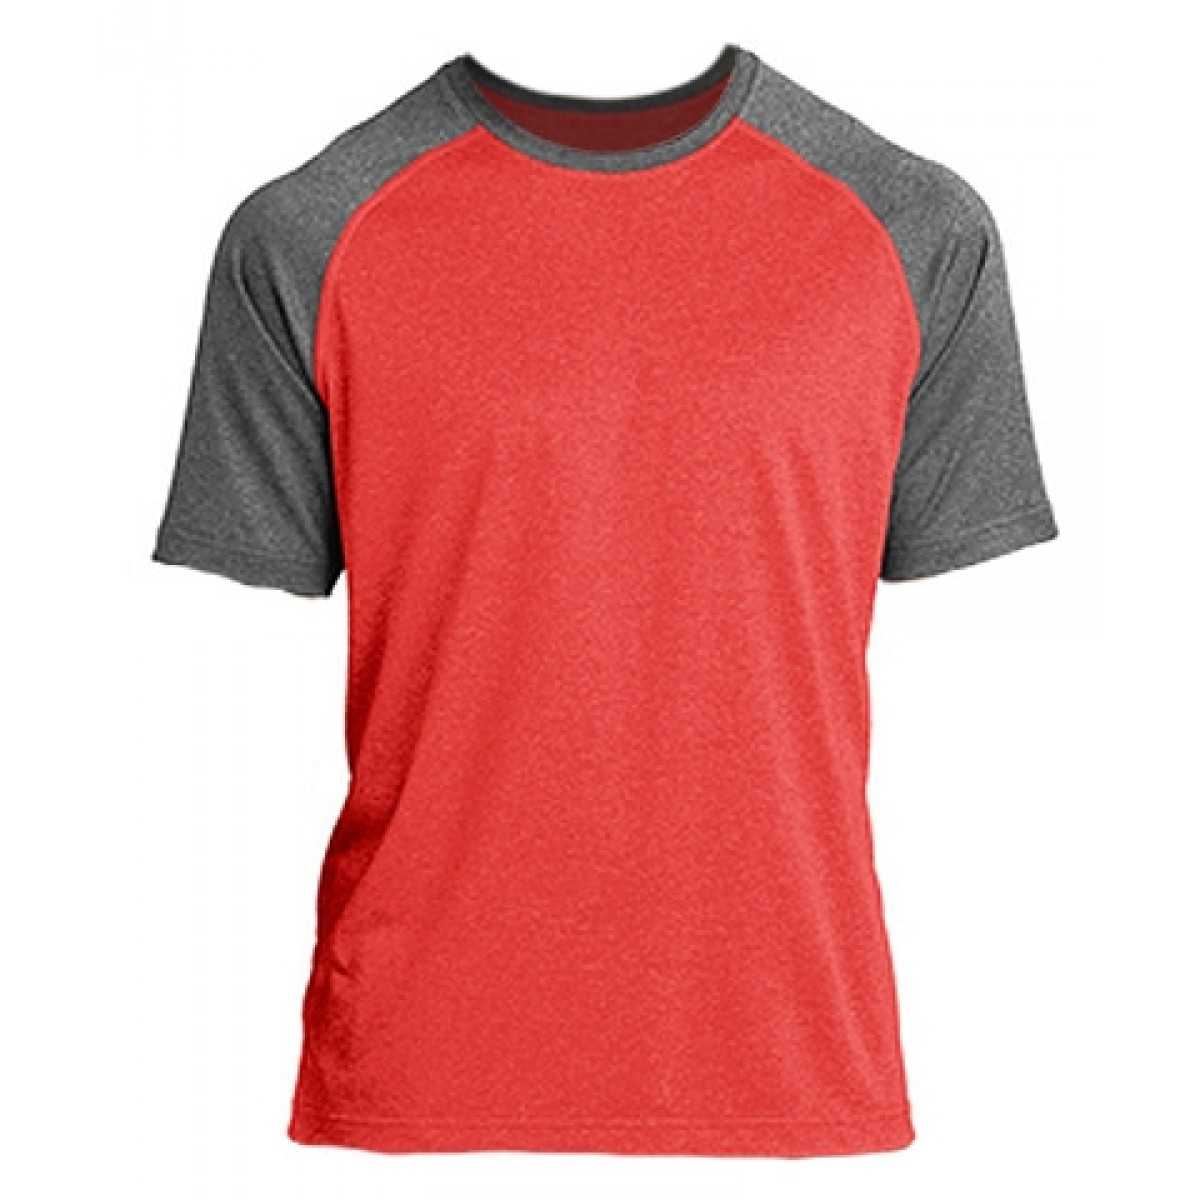 Heather on Heather Dri-Fit Tee-Heathered Red-3XL